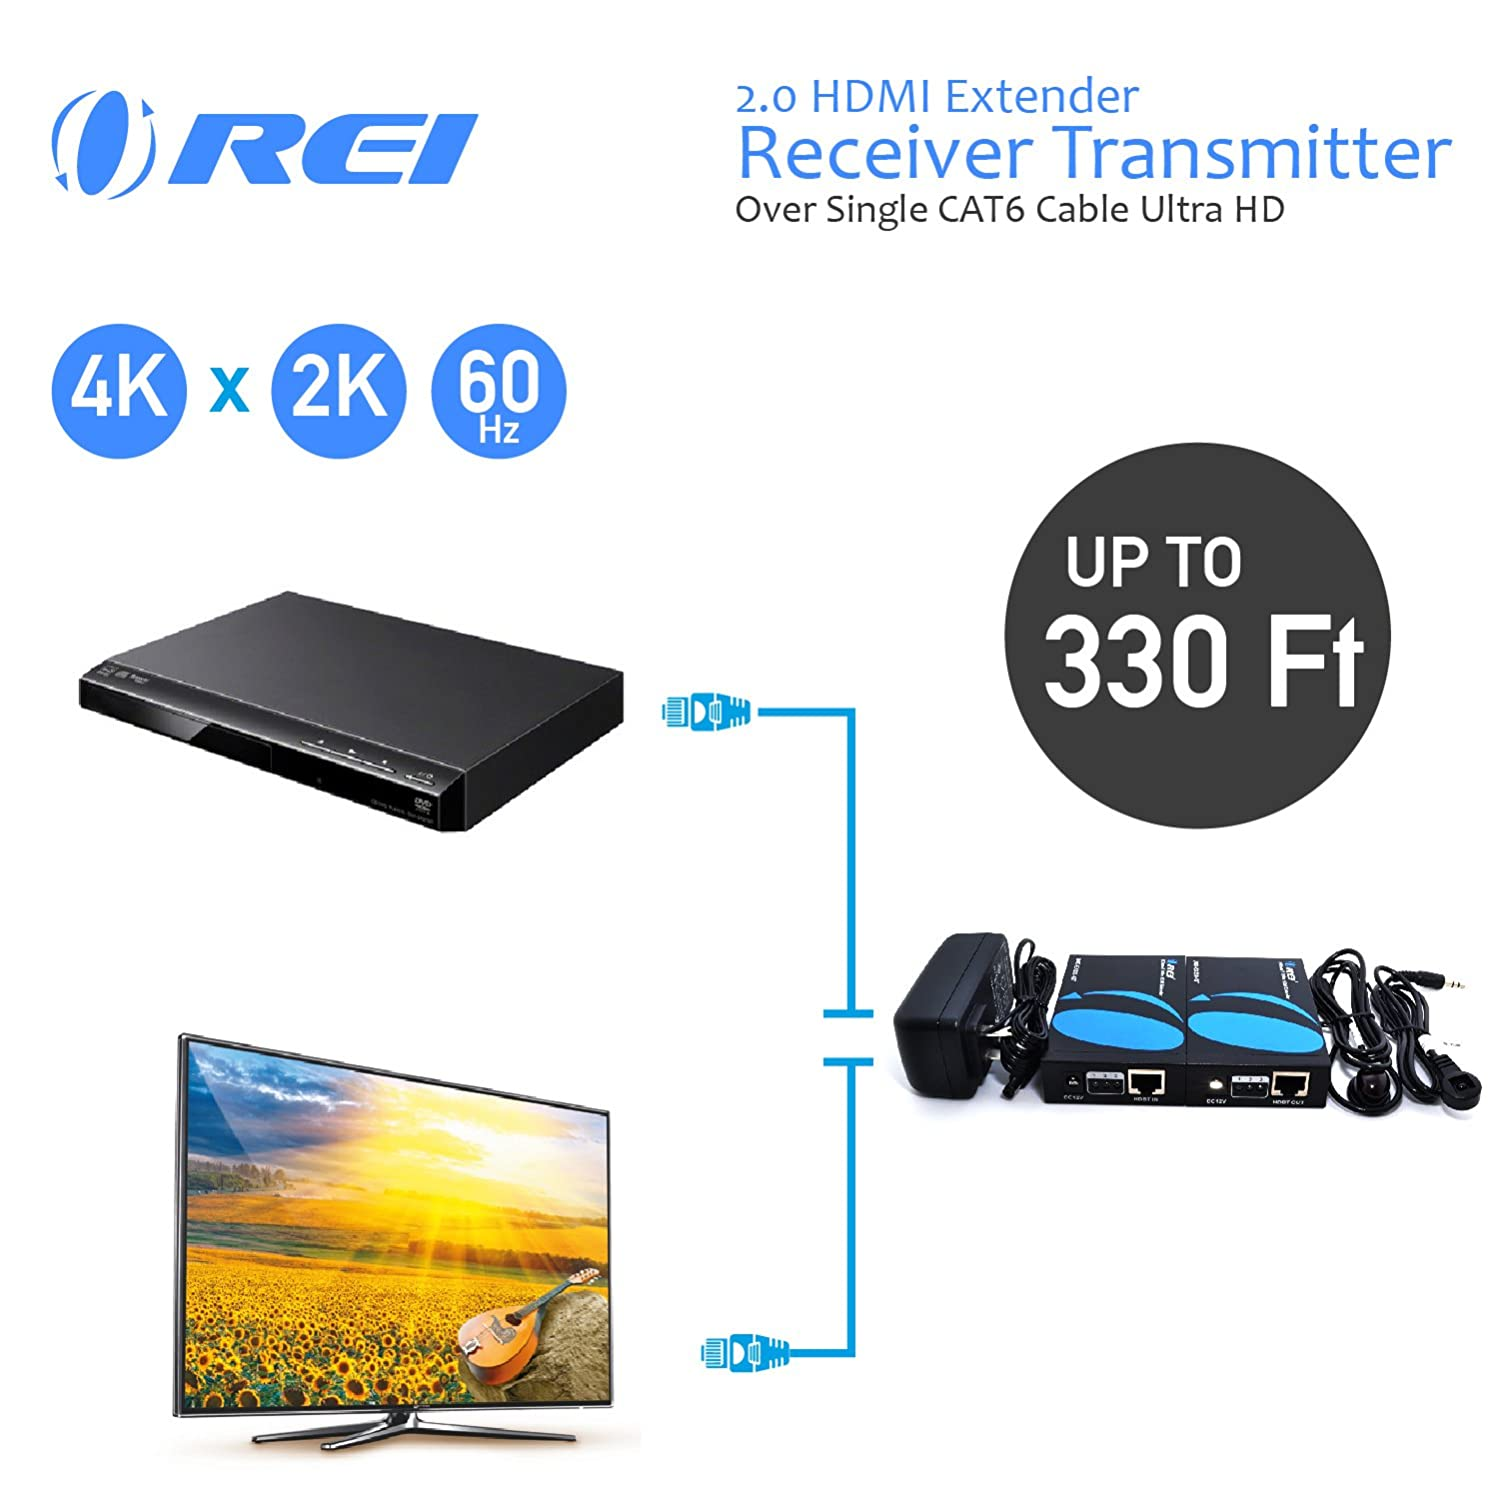 Orei Ultrahd Hdmi Extender 4k 18g Hdbaset Over Single Hdmisuperextendercat6wiringdiagramjpg Cat5e Cat6 Cable 60hz Upto 230ft With Ir Remote 1080p 330 Ft Power